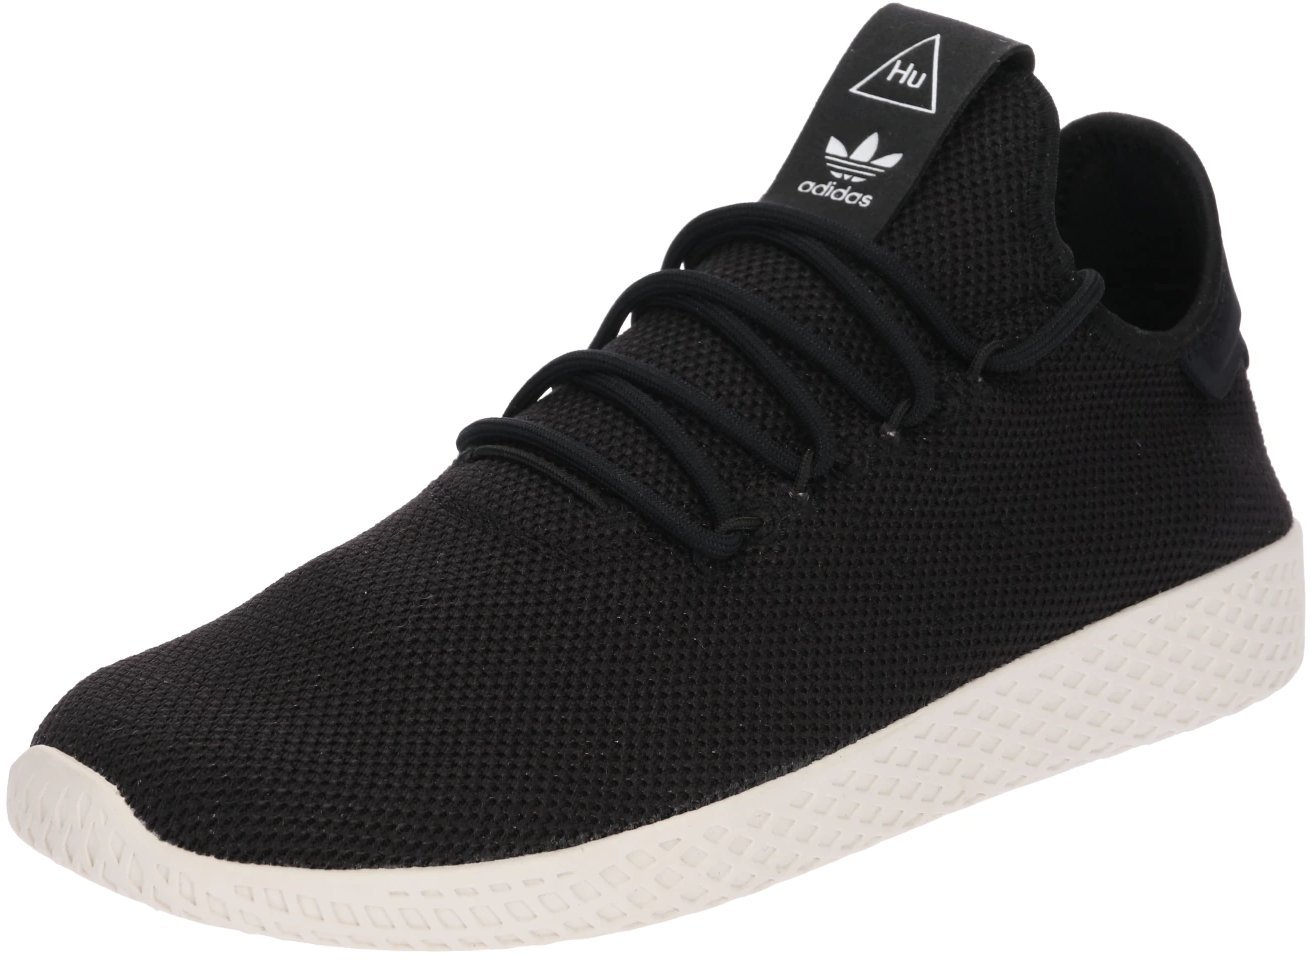 Pharrell Adidas Hu Williams Tennis Adidas 8nOP0kw